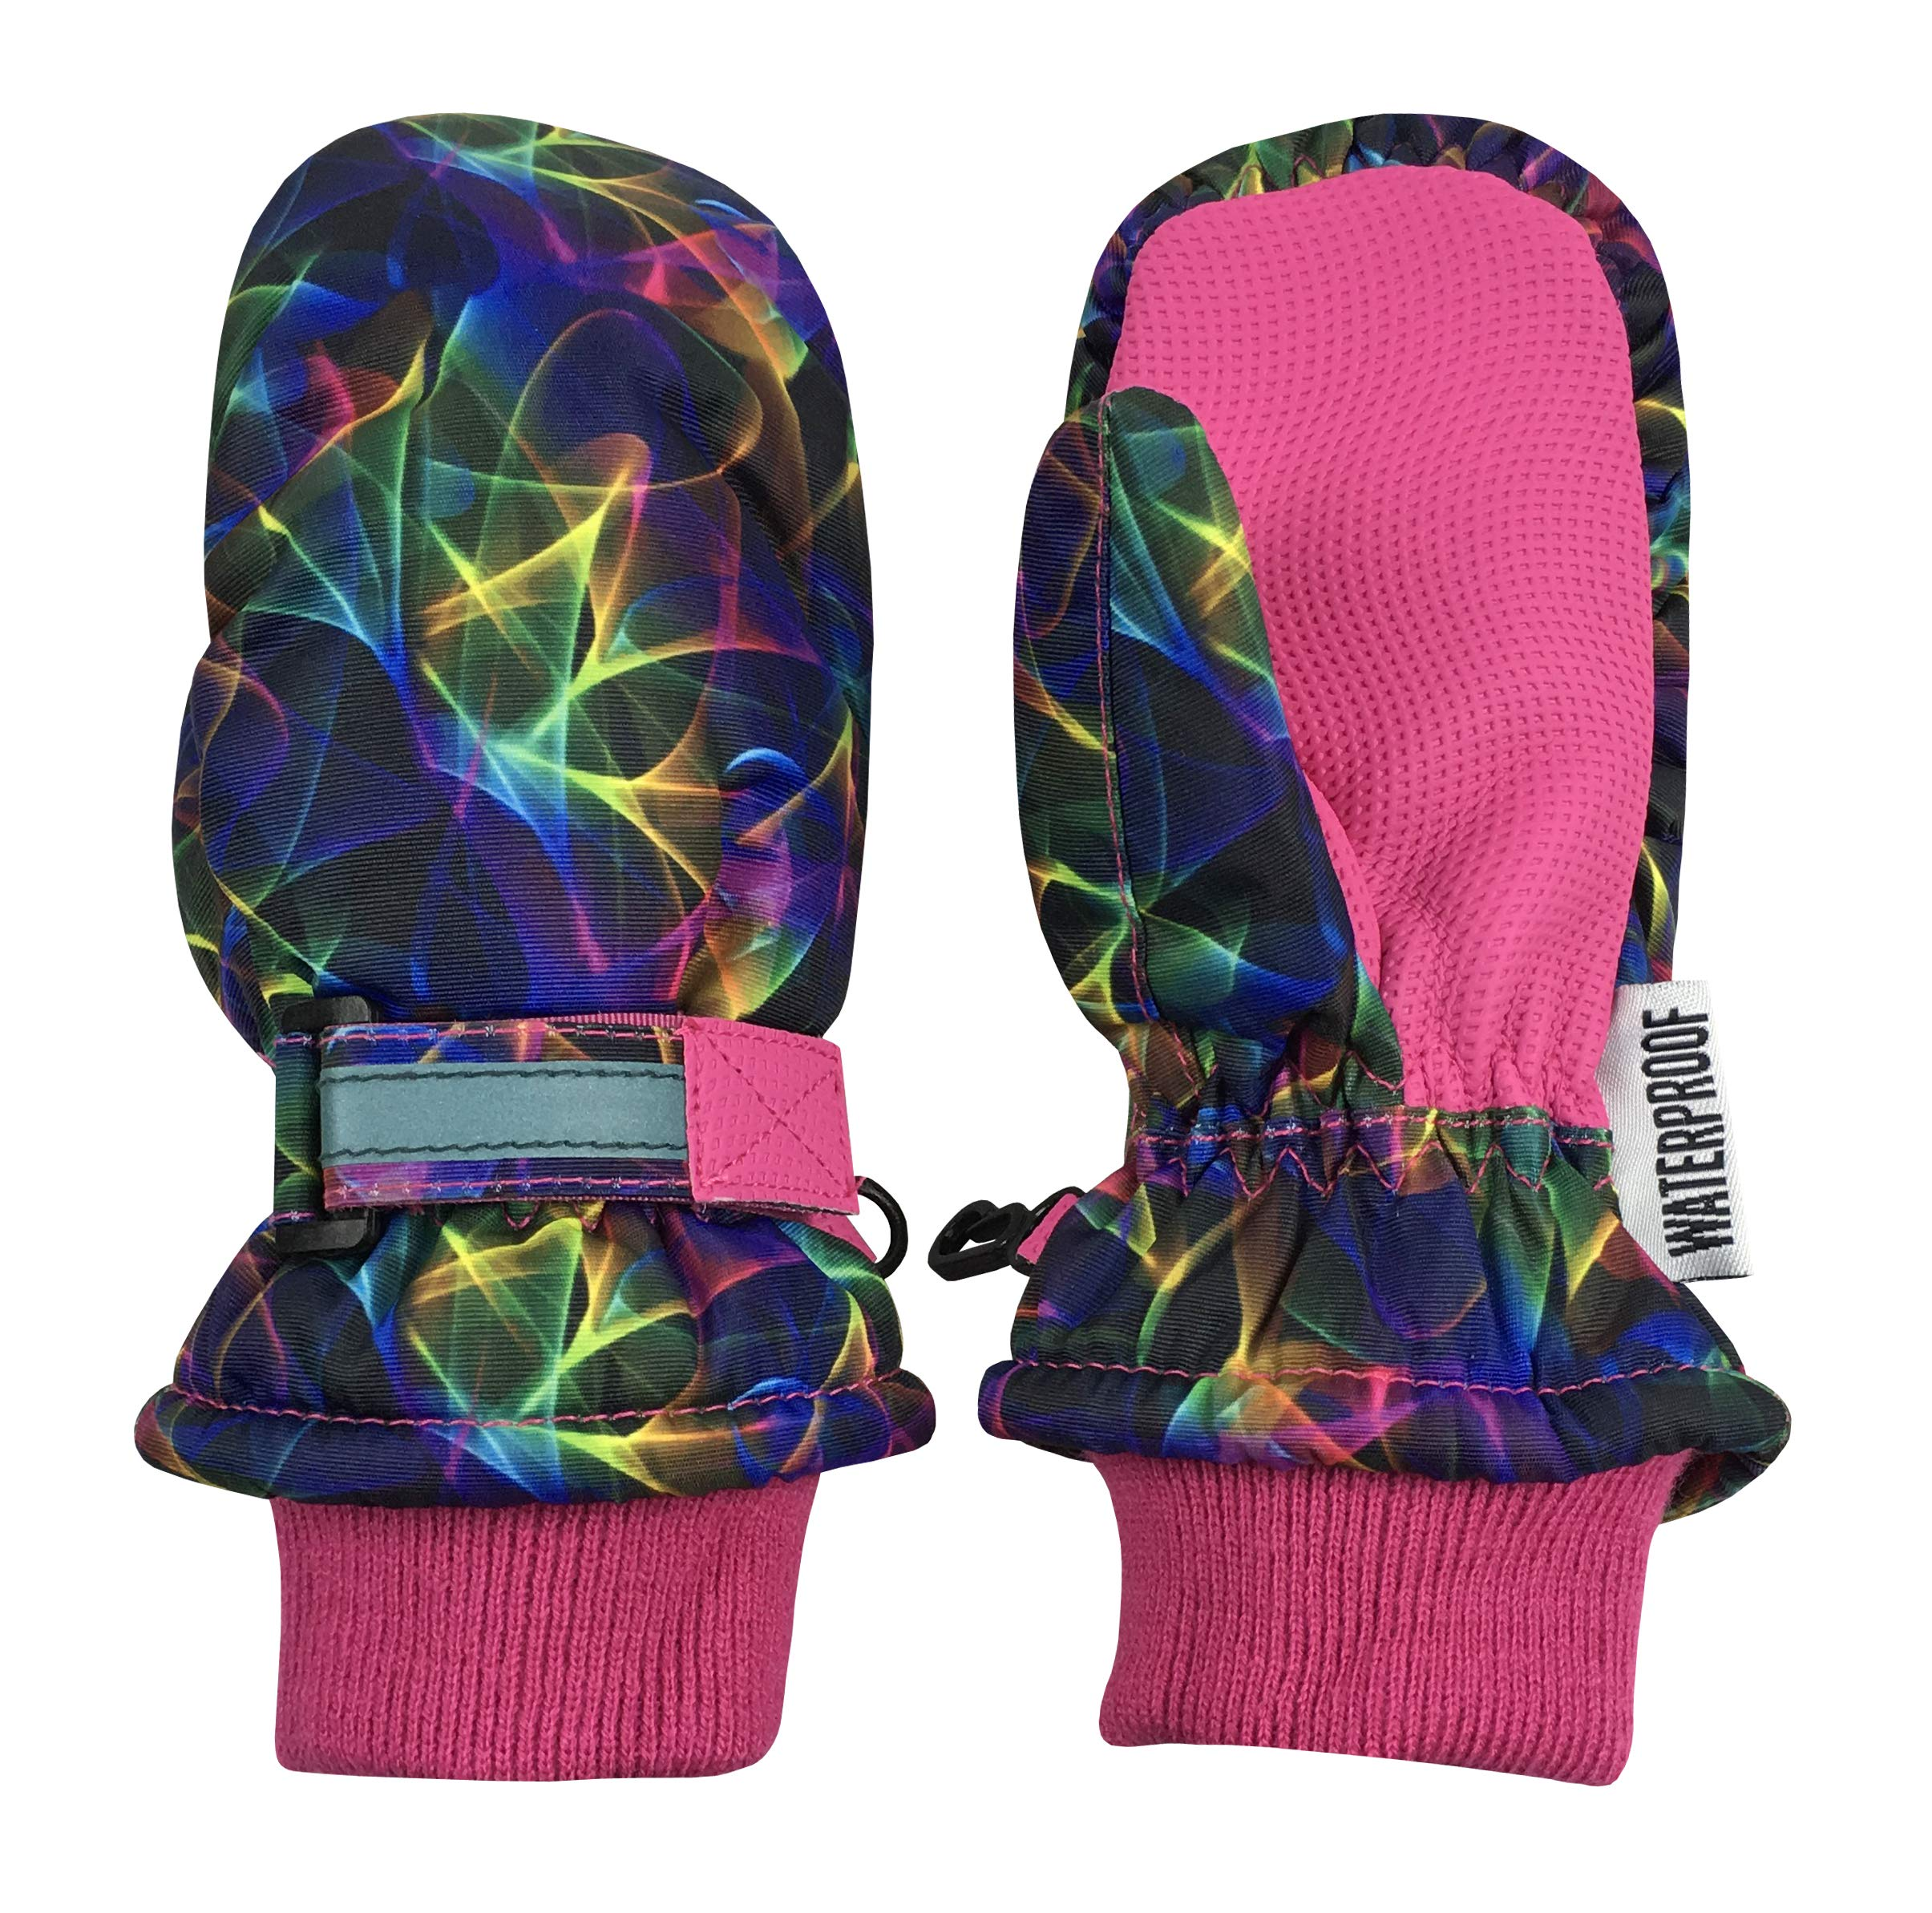 N'Ice Caps Kids Thinsulate Waterproof Reflector Winter Snow Ski Mittens (Fuchsia Multi Laser, 4-5 Years)